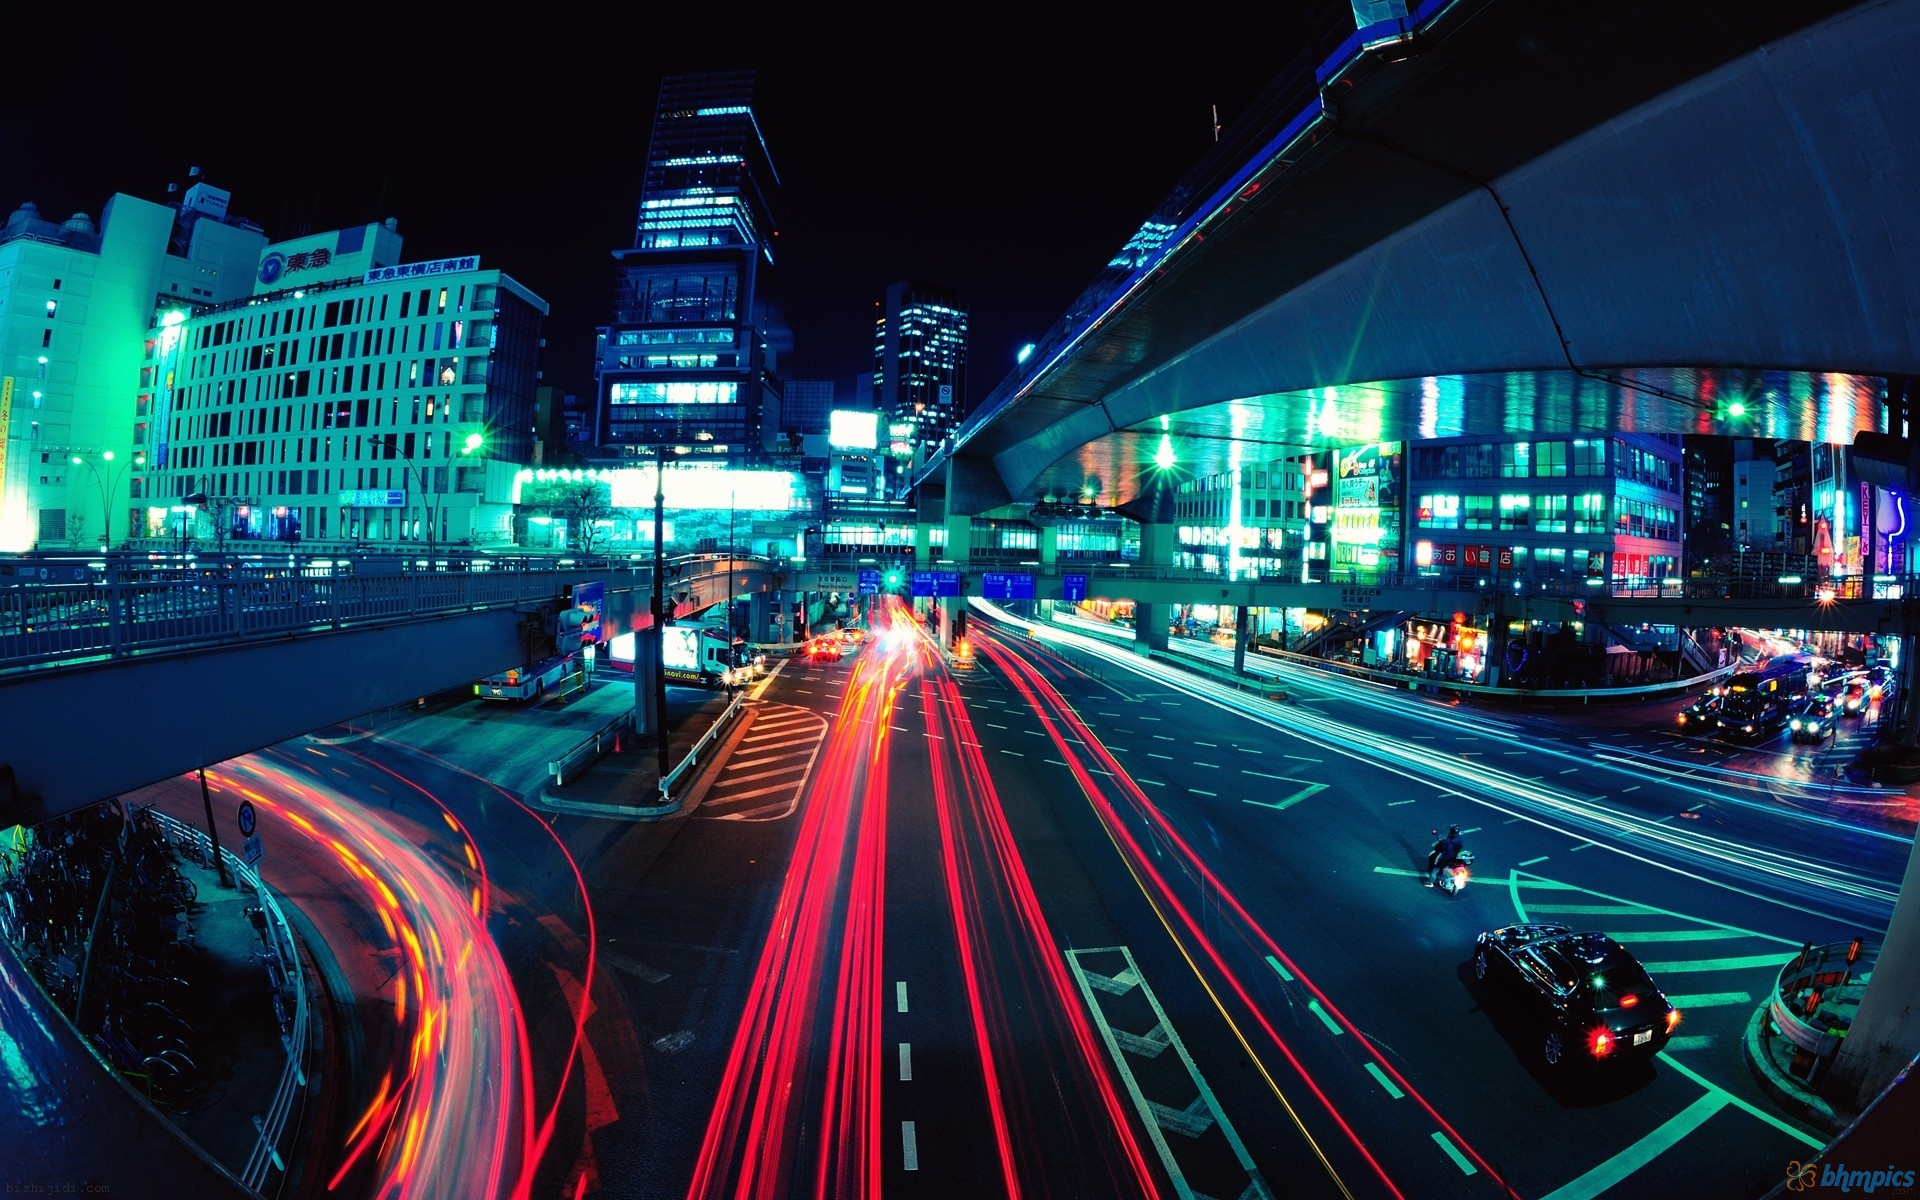 Tokyo Panorama A 10000 Image Picture of Tokyo by Jeffrey Martin 1920x1200